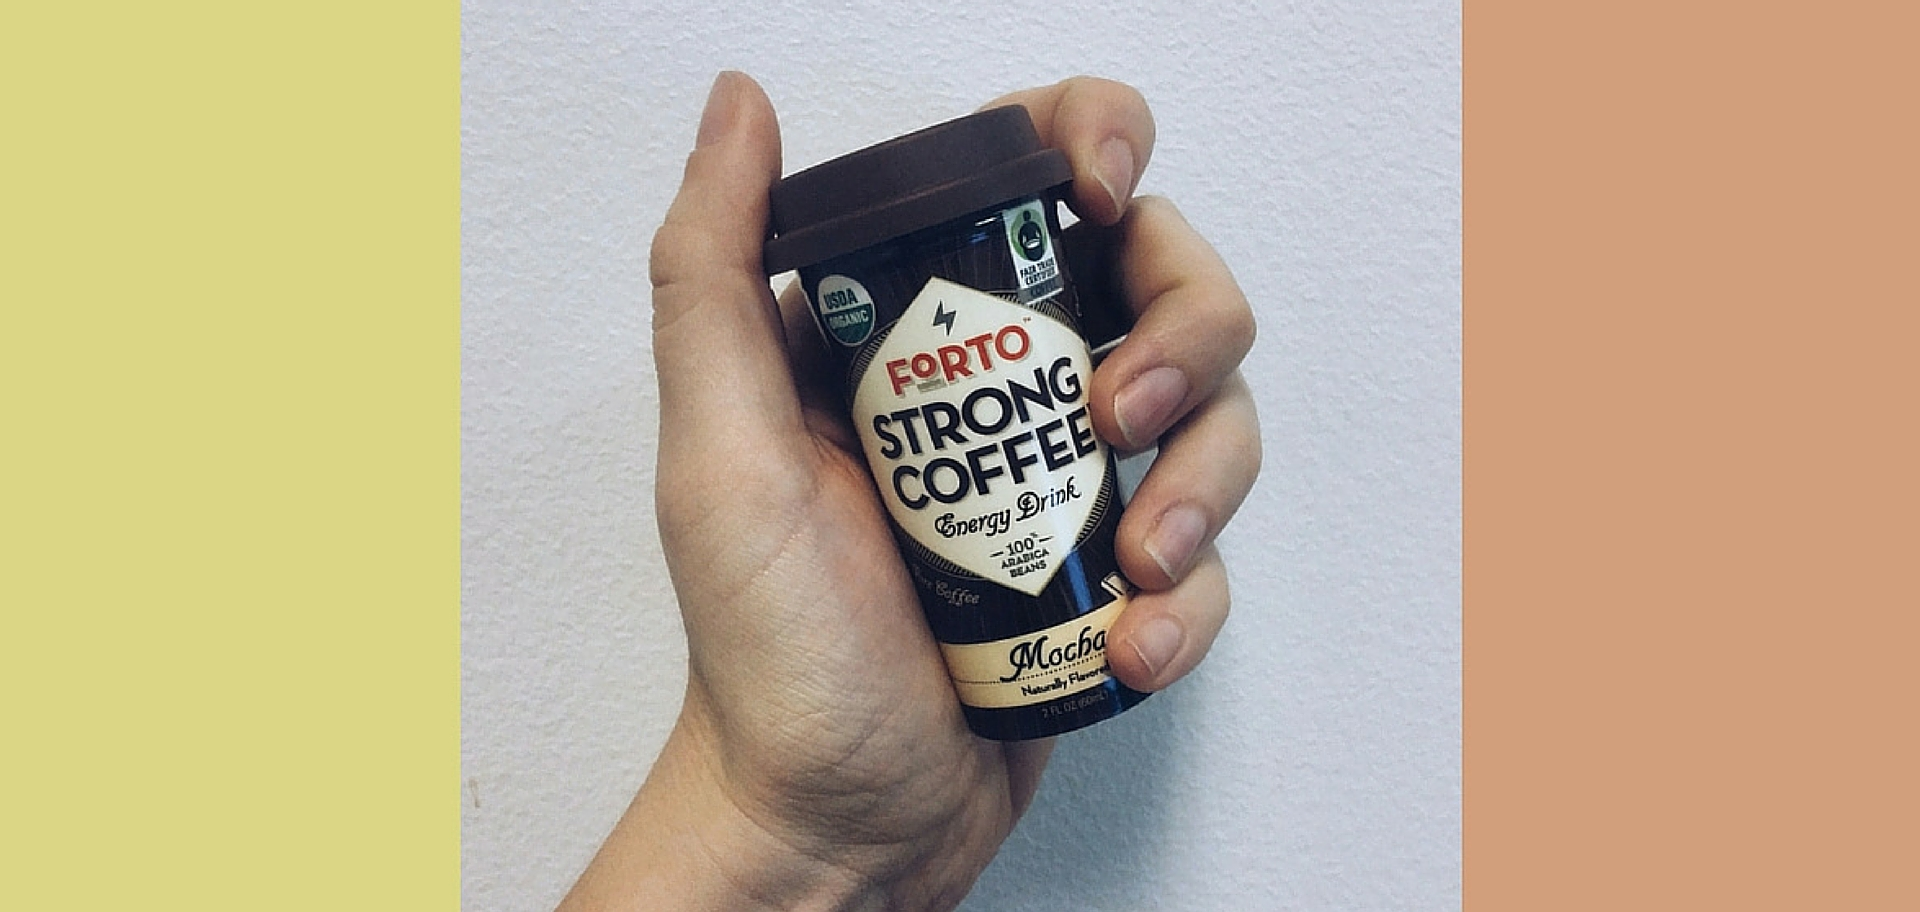 Forto Strong Coffee Energy Drink Review